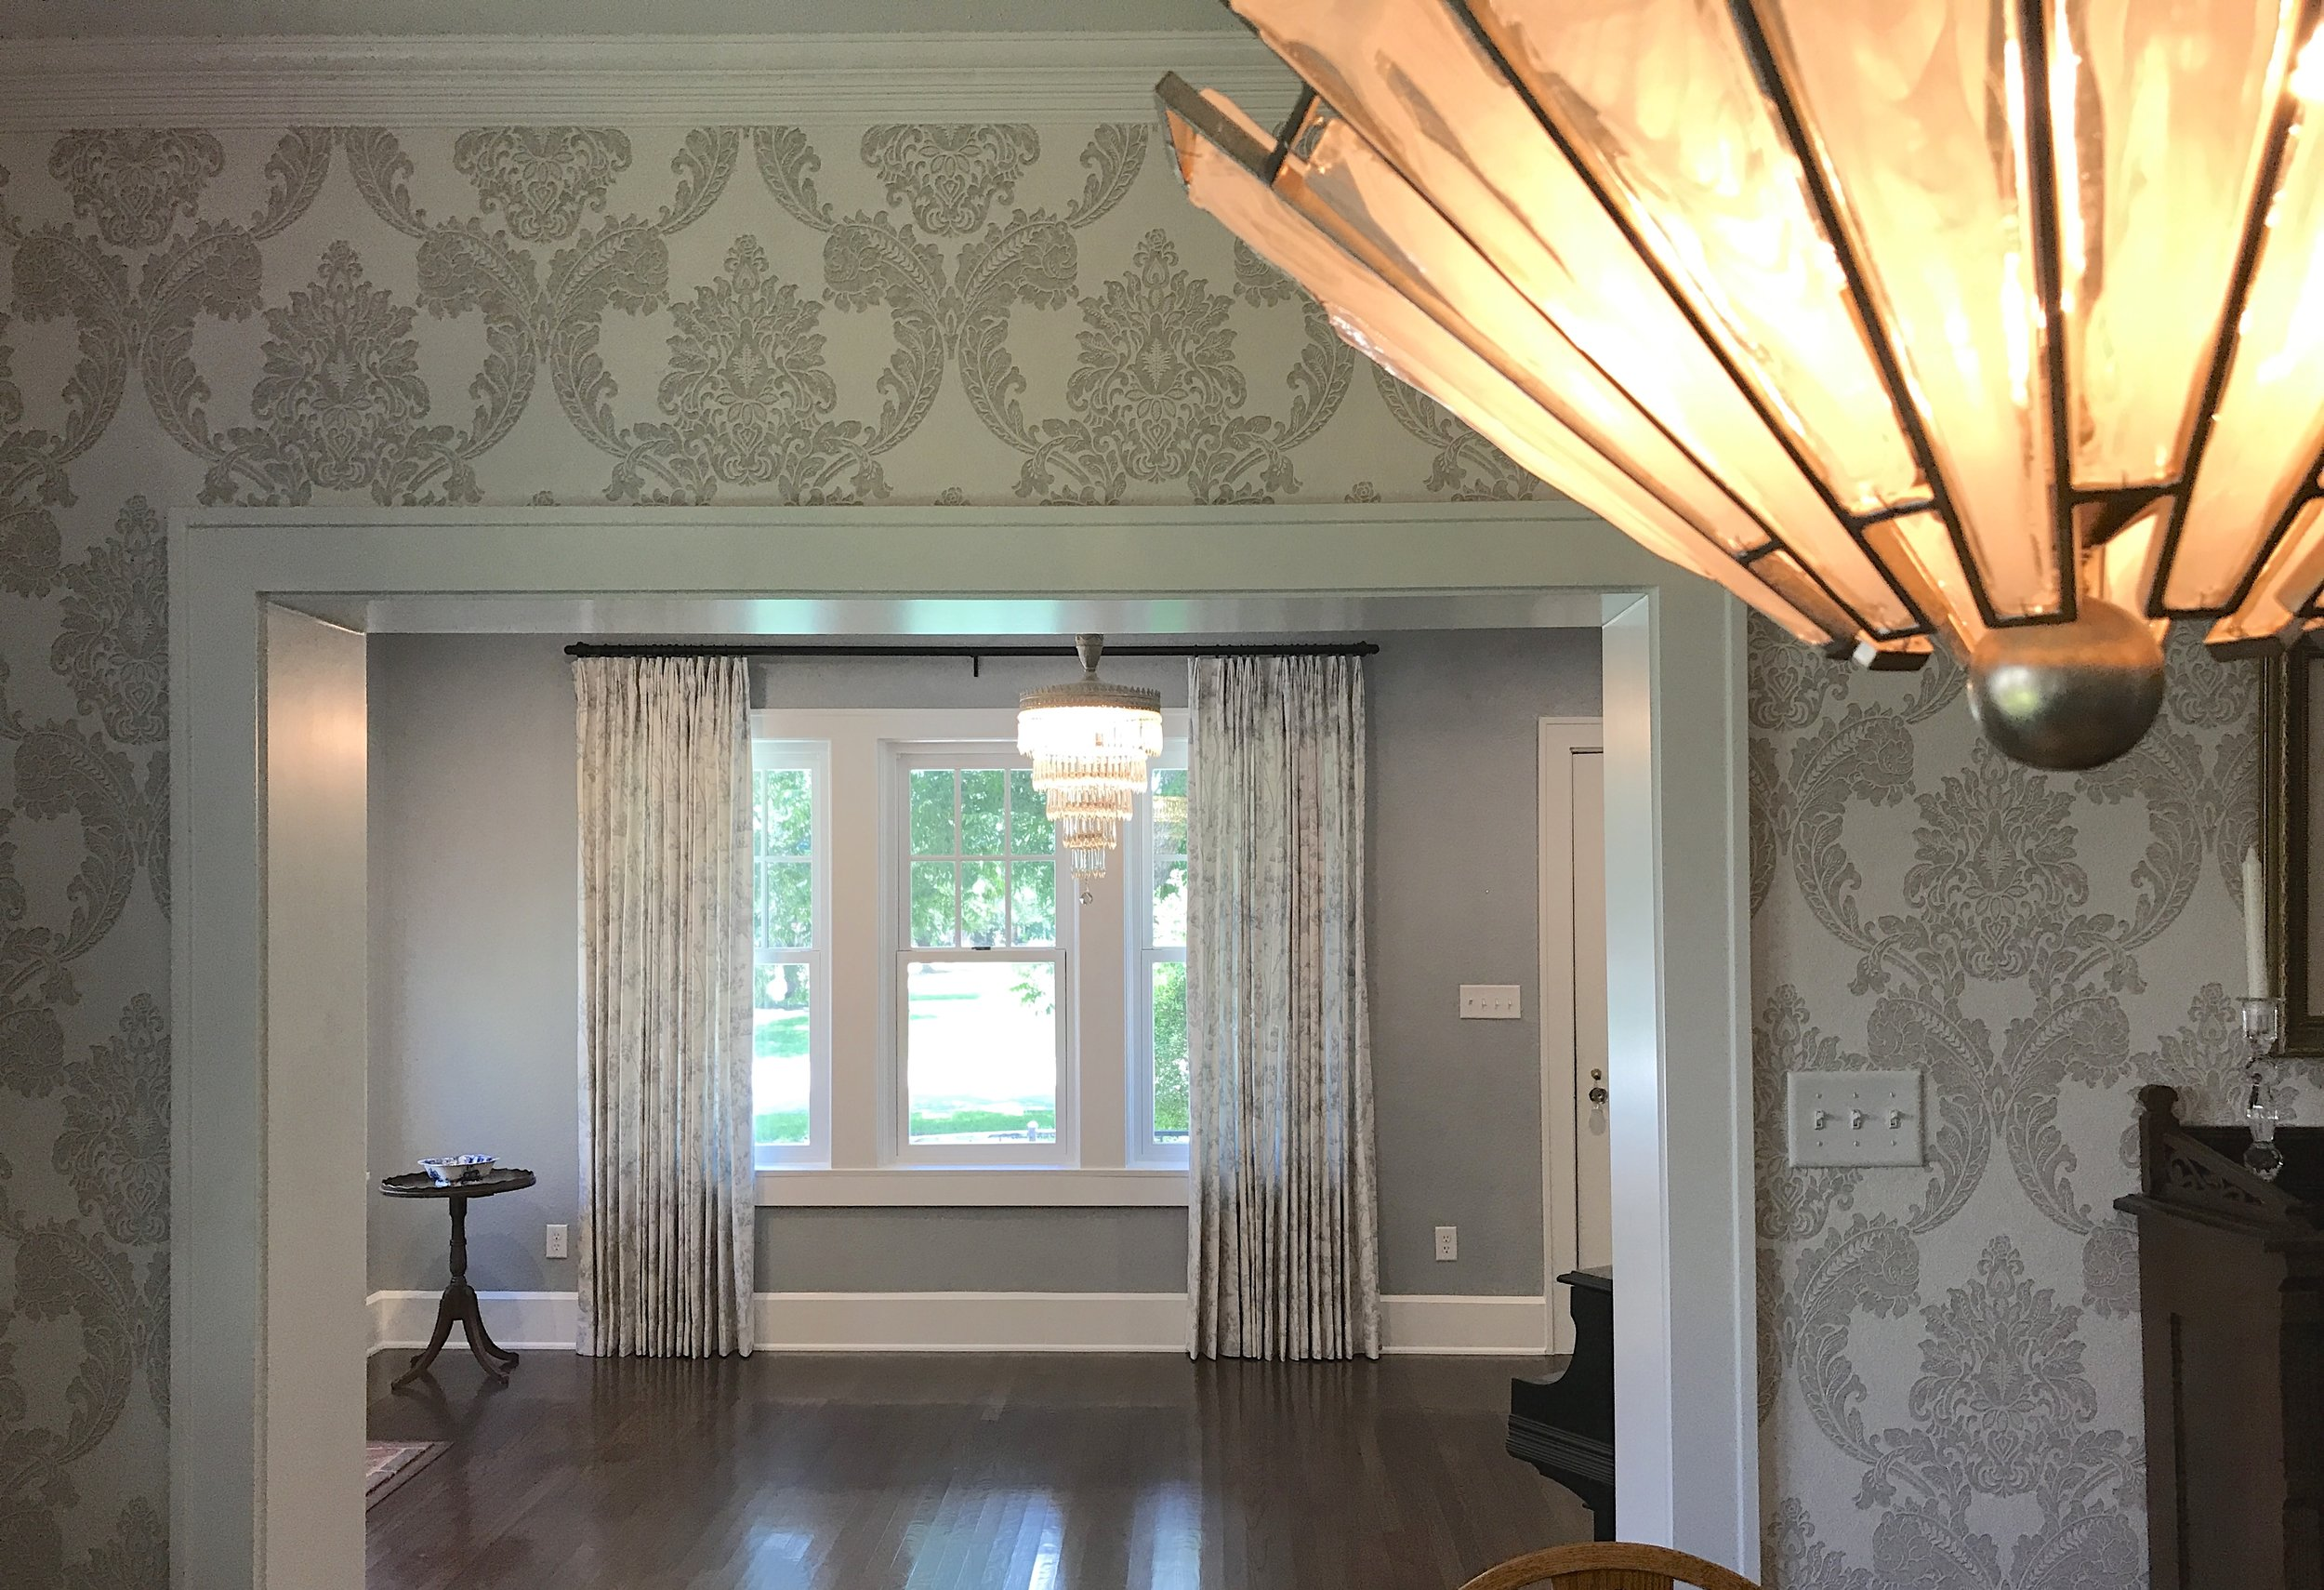 View from the dining room covered in damask wallpaper, looking into the parlor.